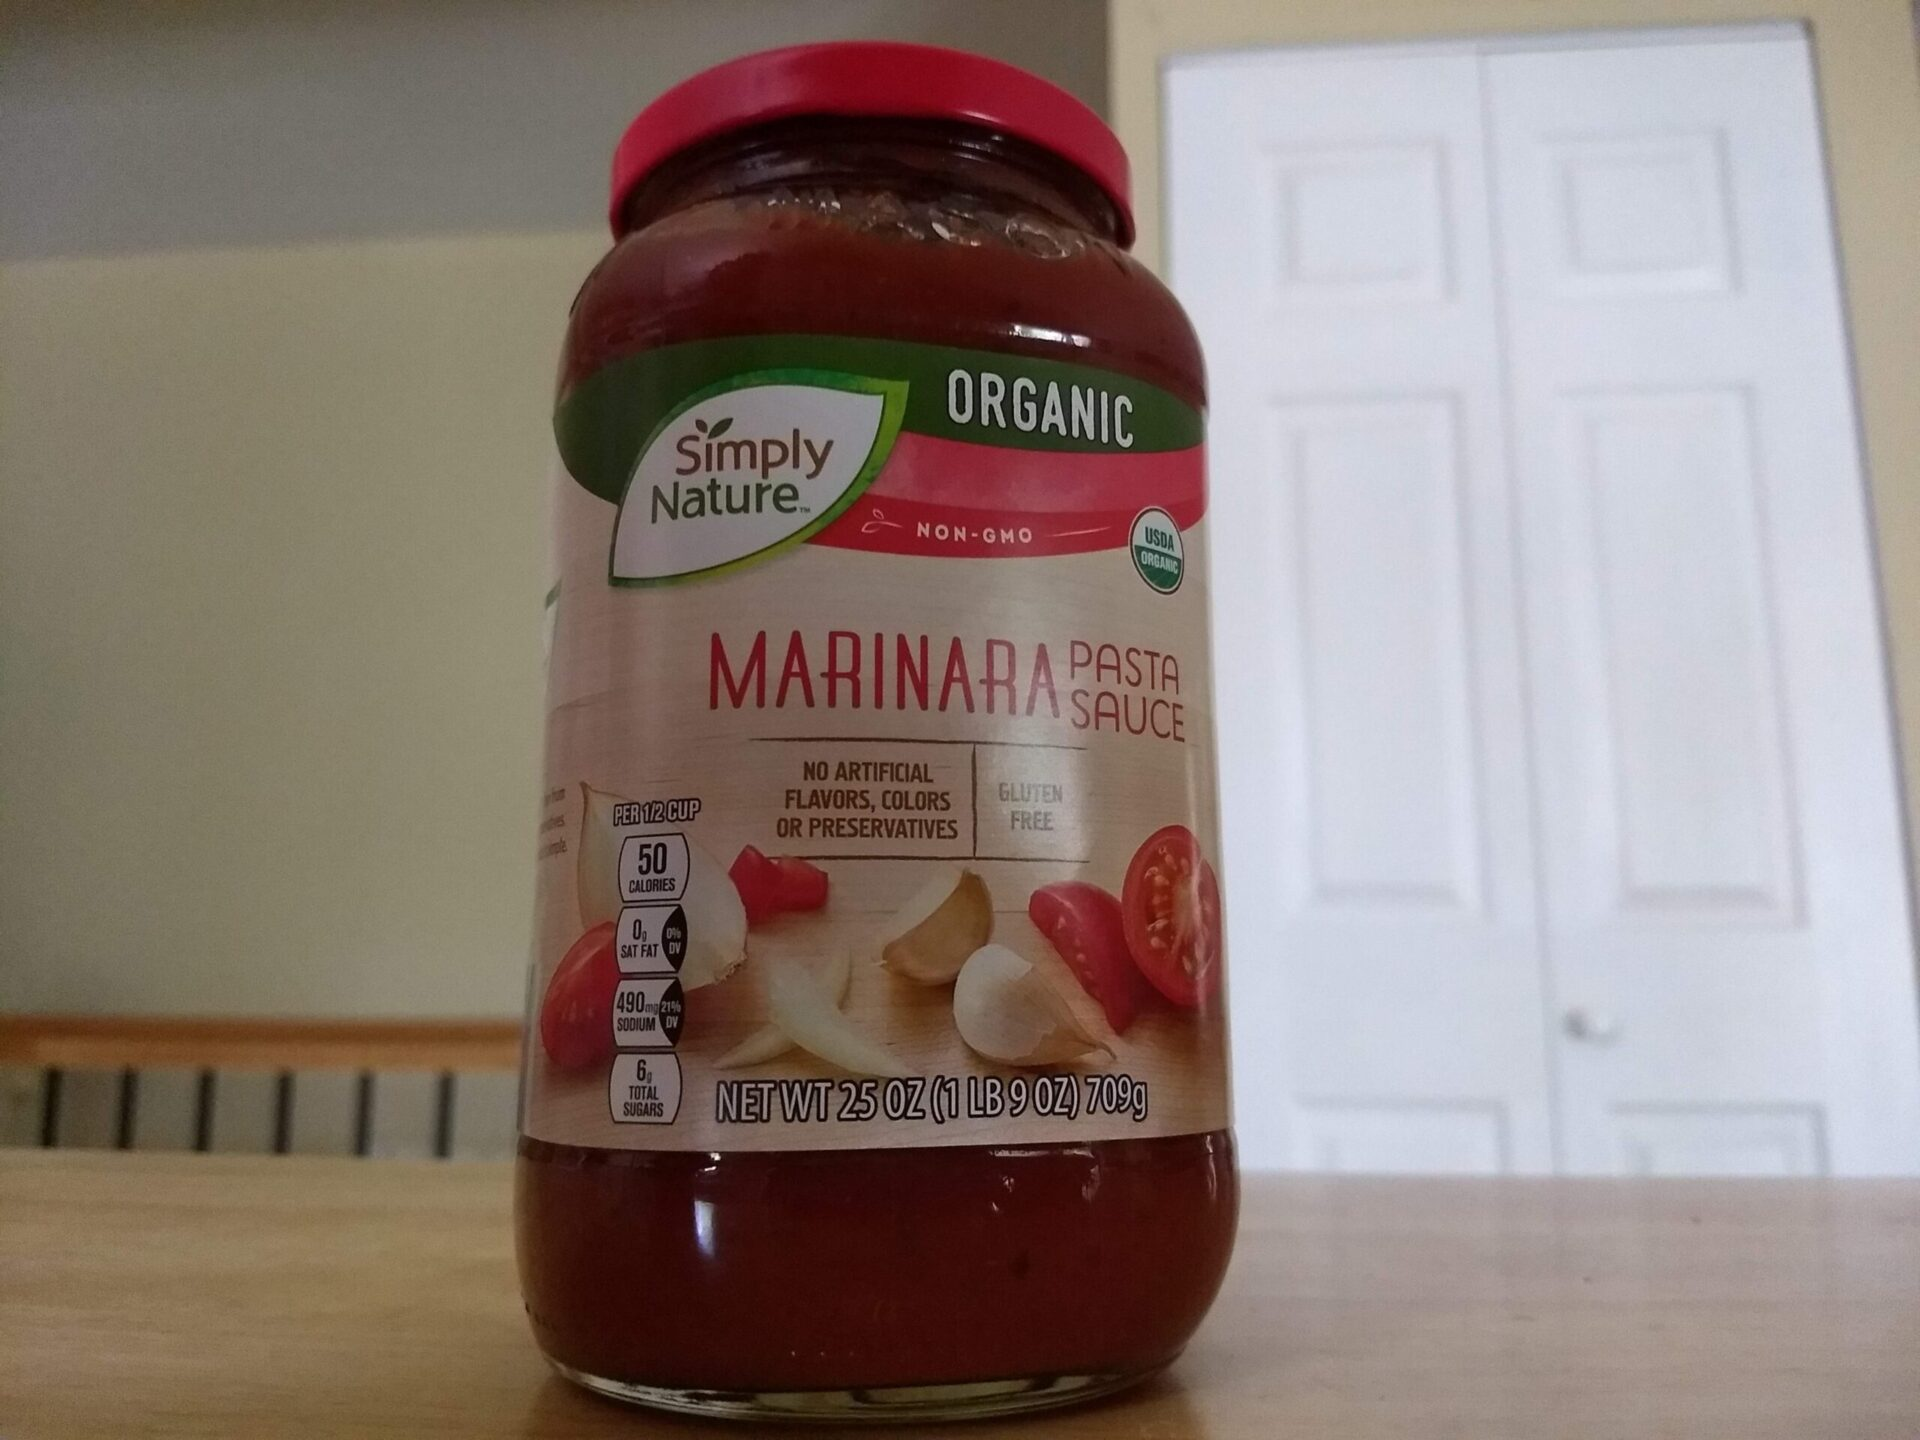 Simply Nature Organic Marinara Pasta Sauce Aldi Reviewer